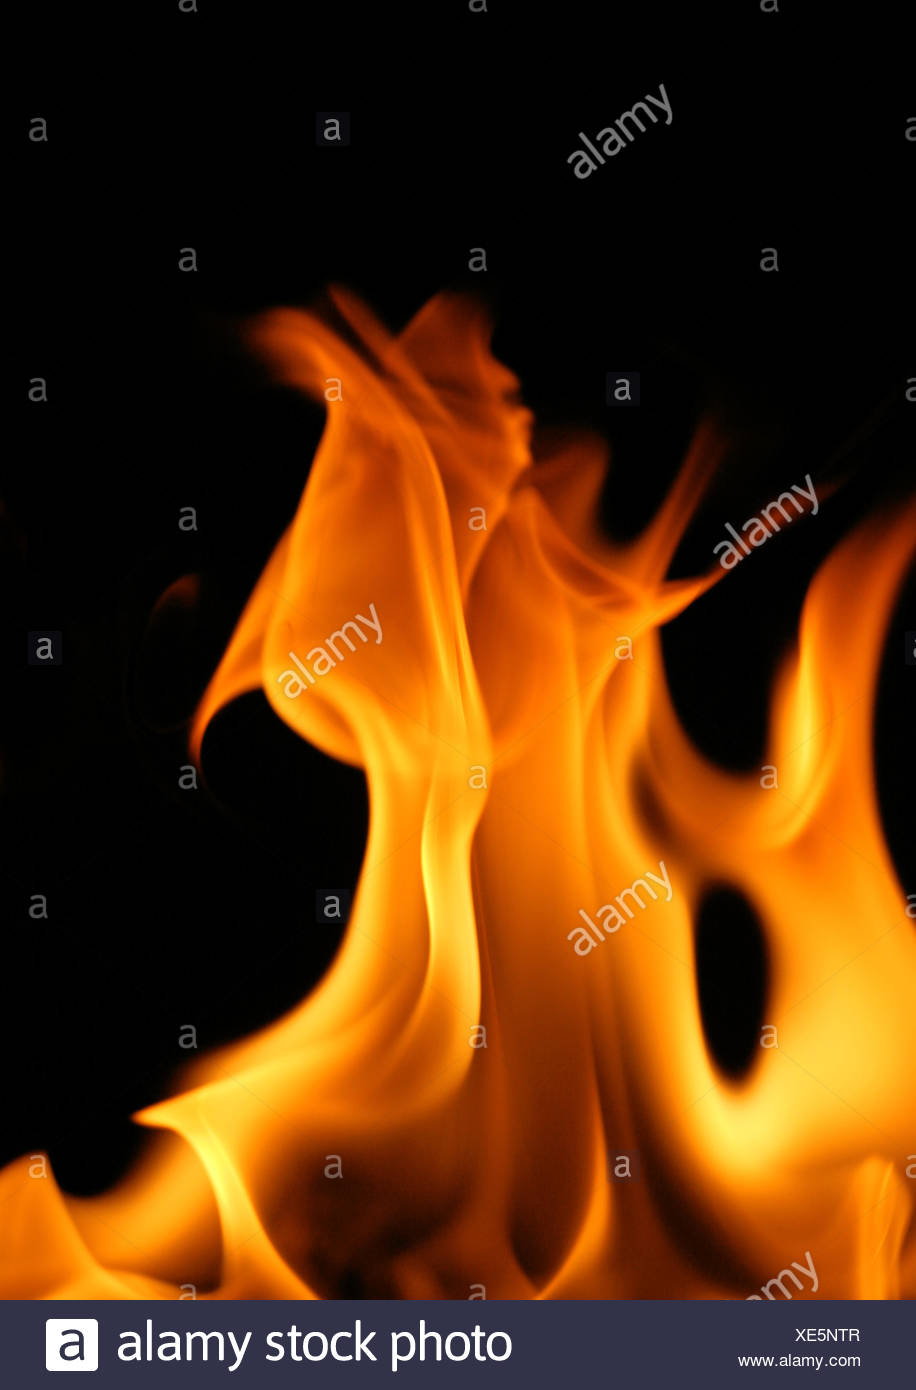 hot heat fire - Stock Image